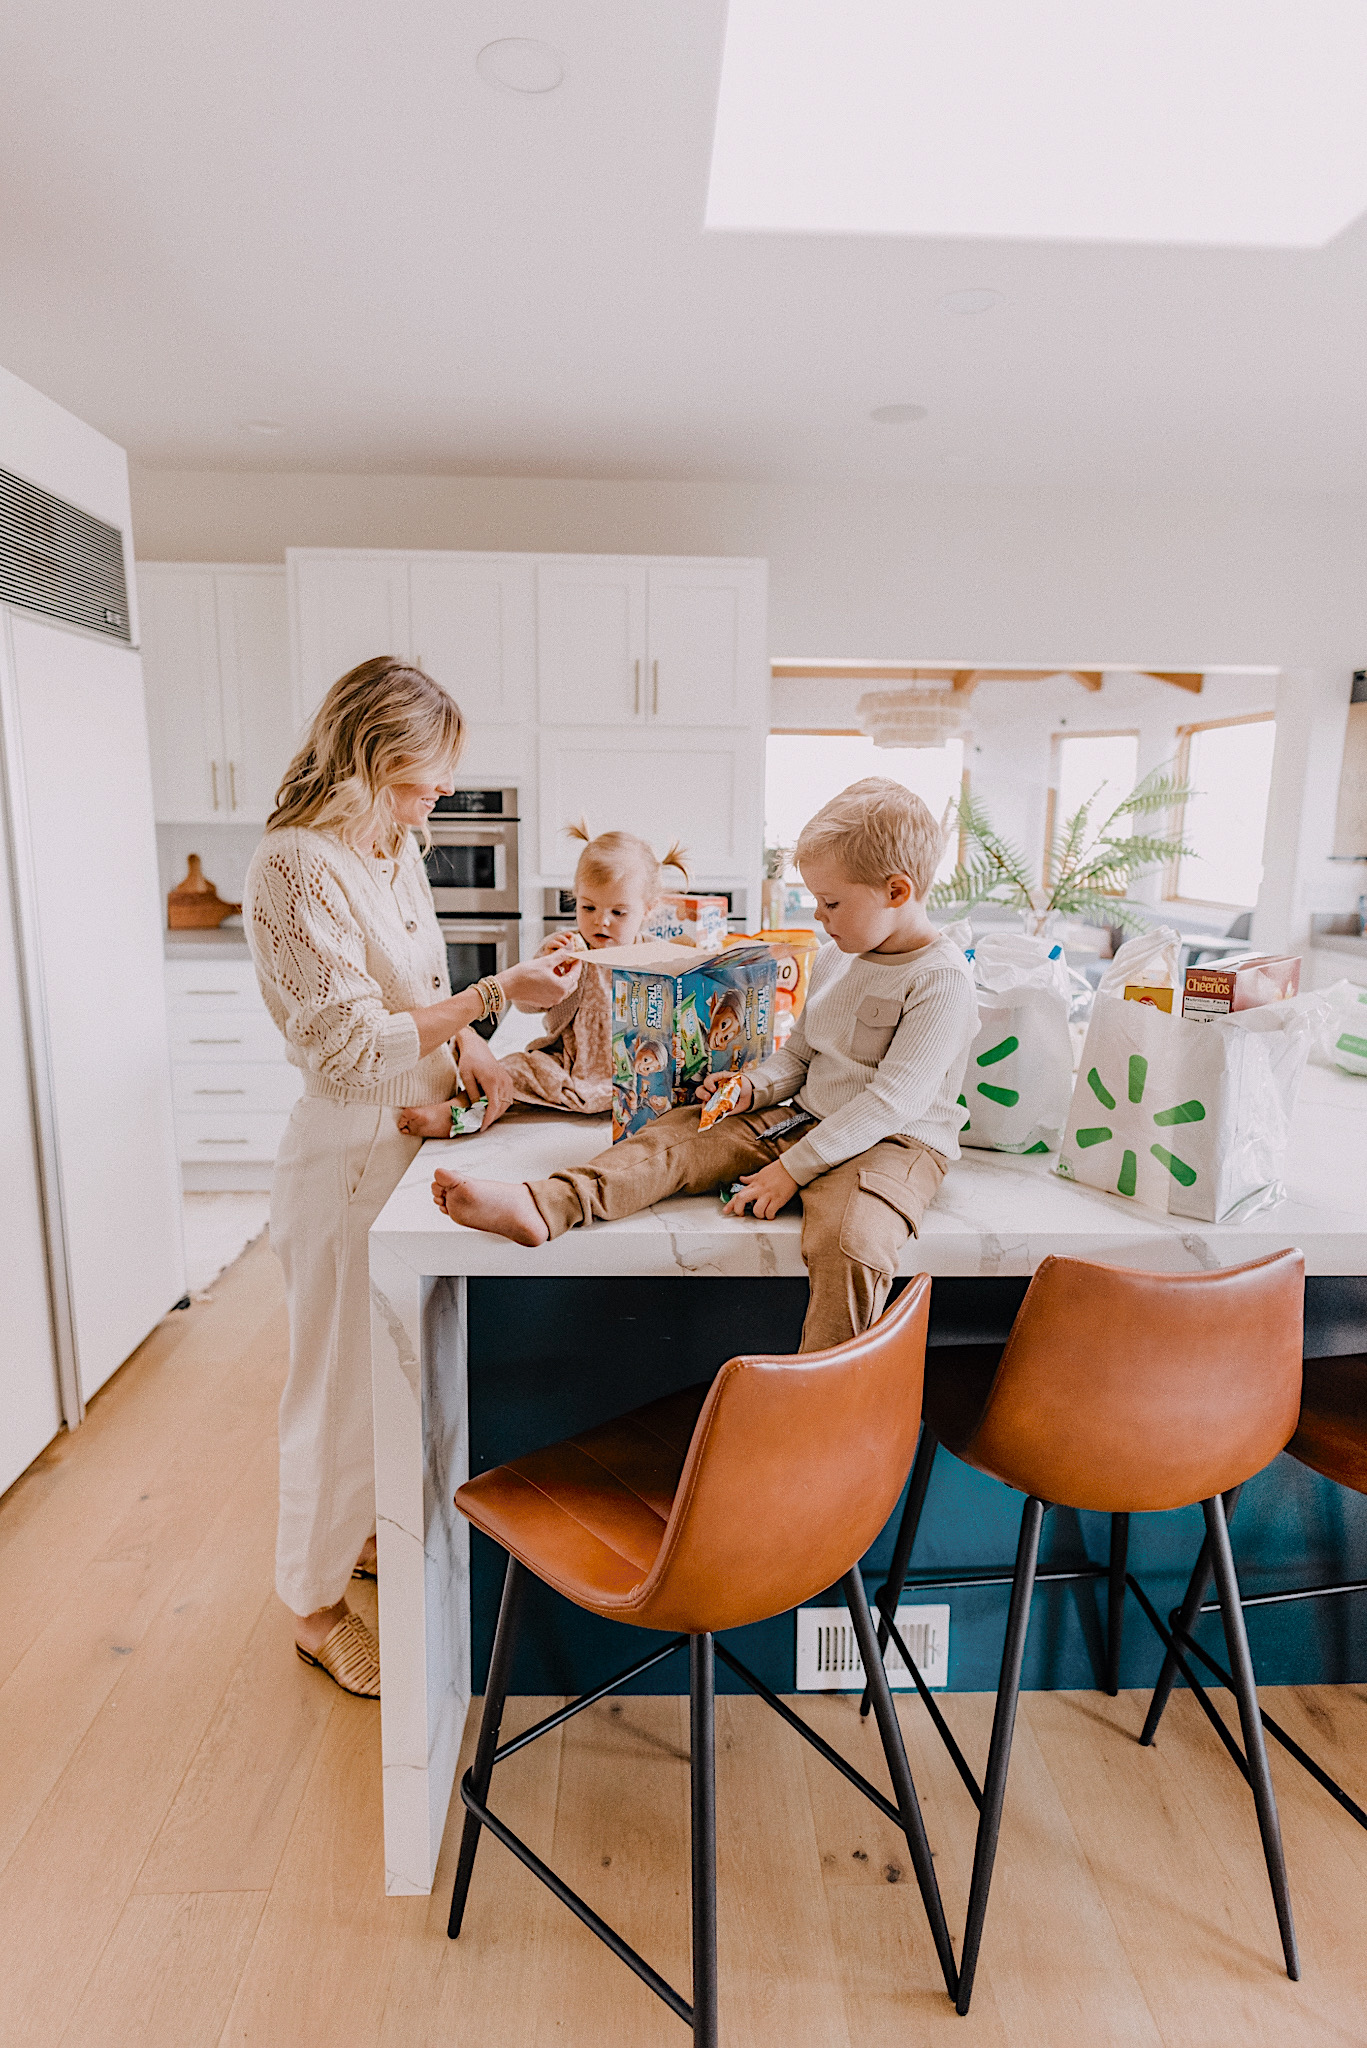 mom hacks saving money and time with walmart+ membership |Walmart Membership by popular San Diego fashion blog, Navy Grace: image of a mom and her two kids standing around the kitchen island counter and eating rice krispy treats.